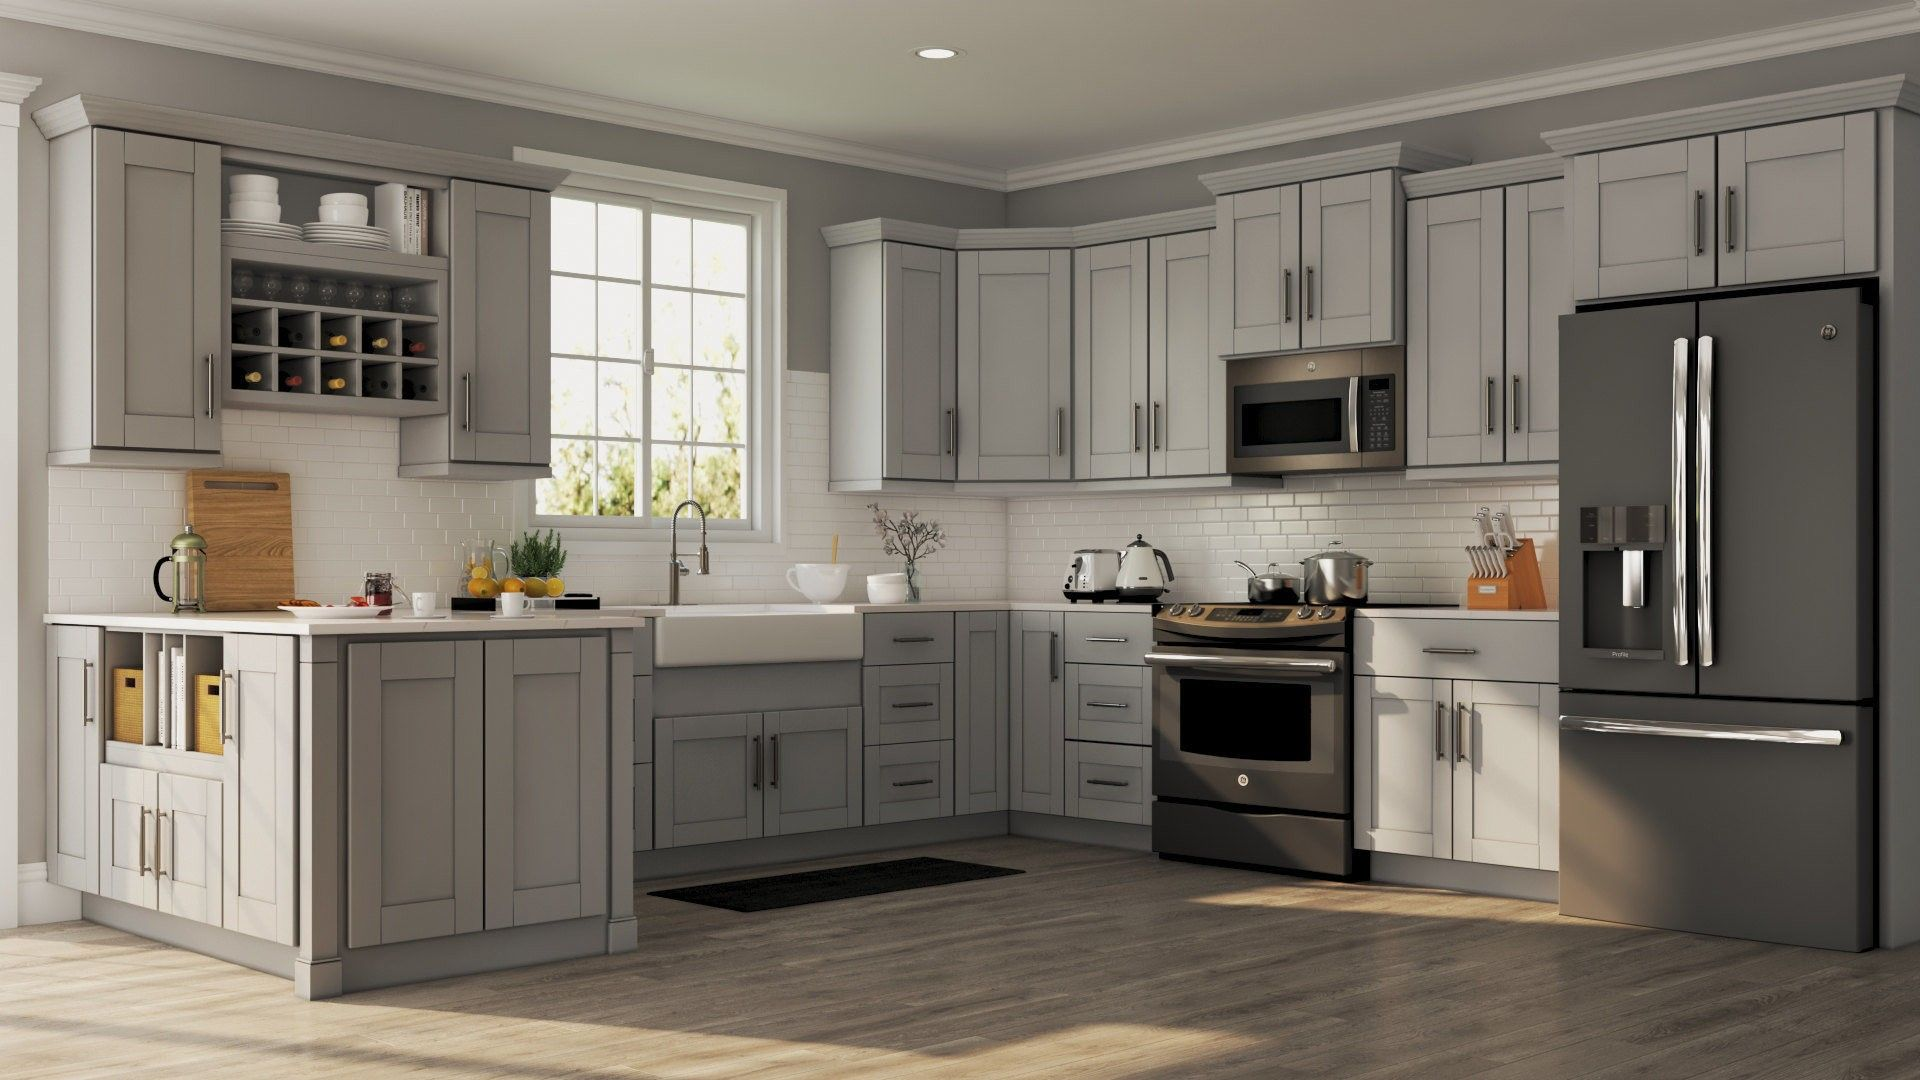 Pin by Melisa Farthing on kitchen in 2020 Home depot